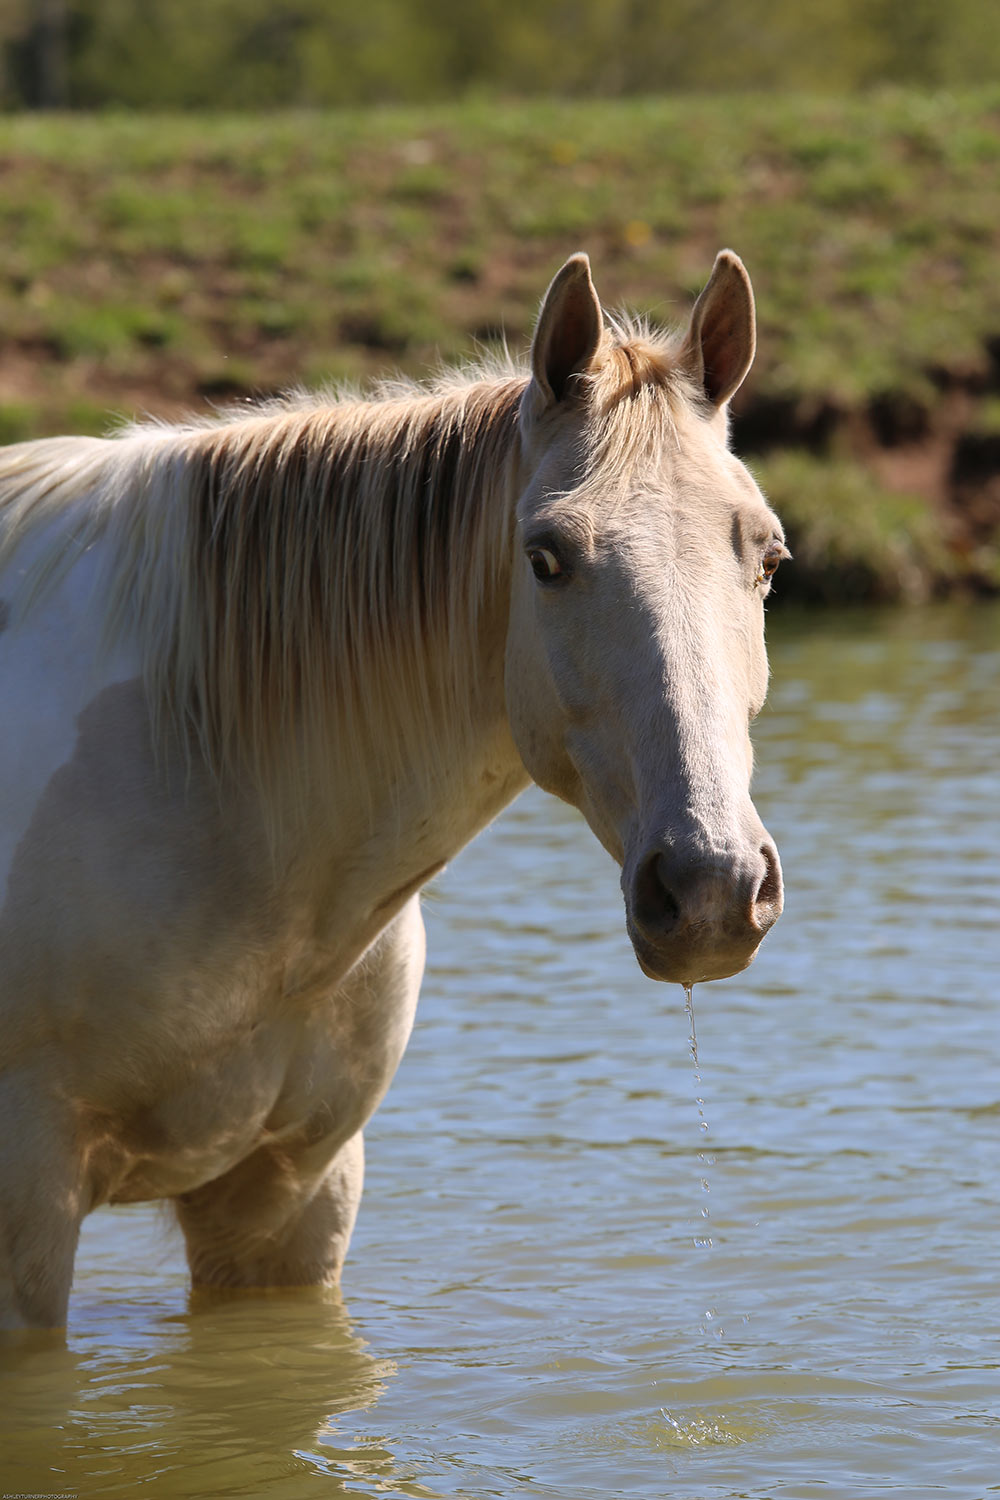 Horse Retirement Farms - Playing in the Water